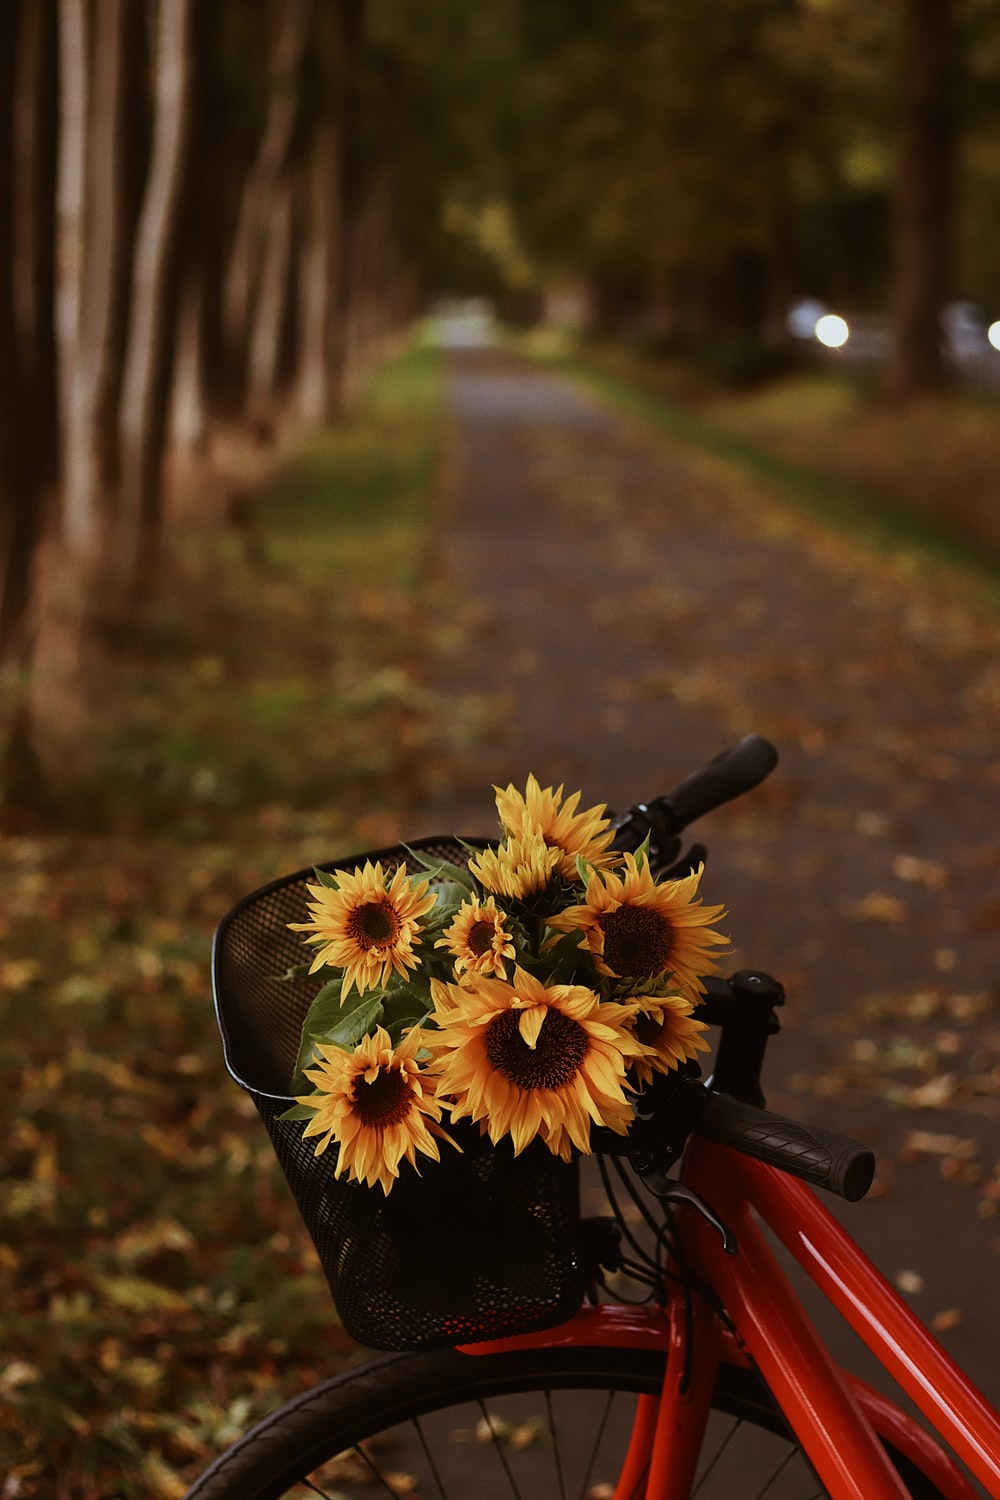 yellow flowers on black bicycle